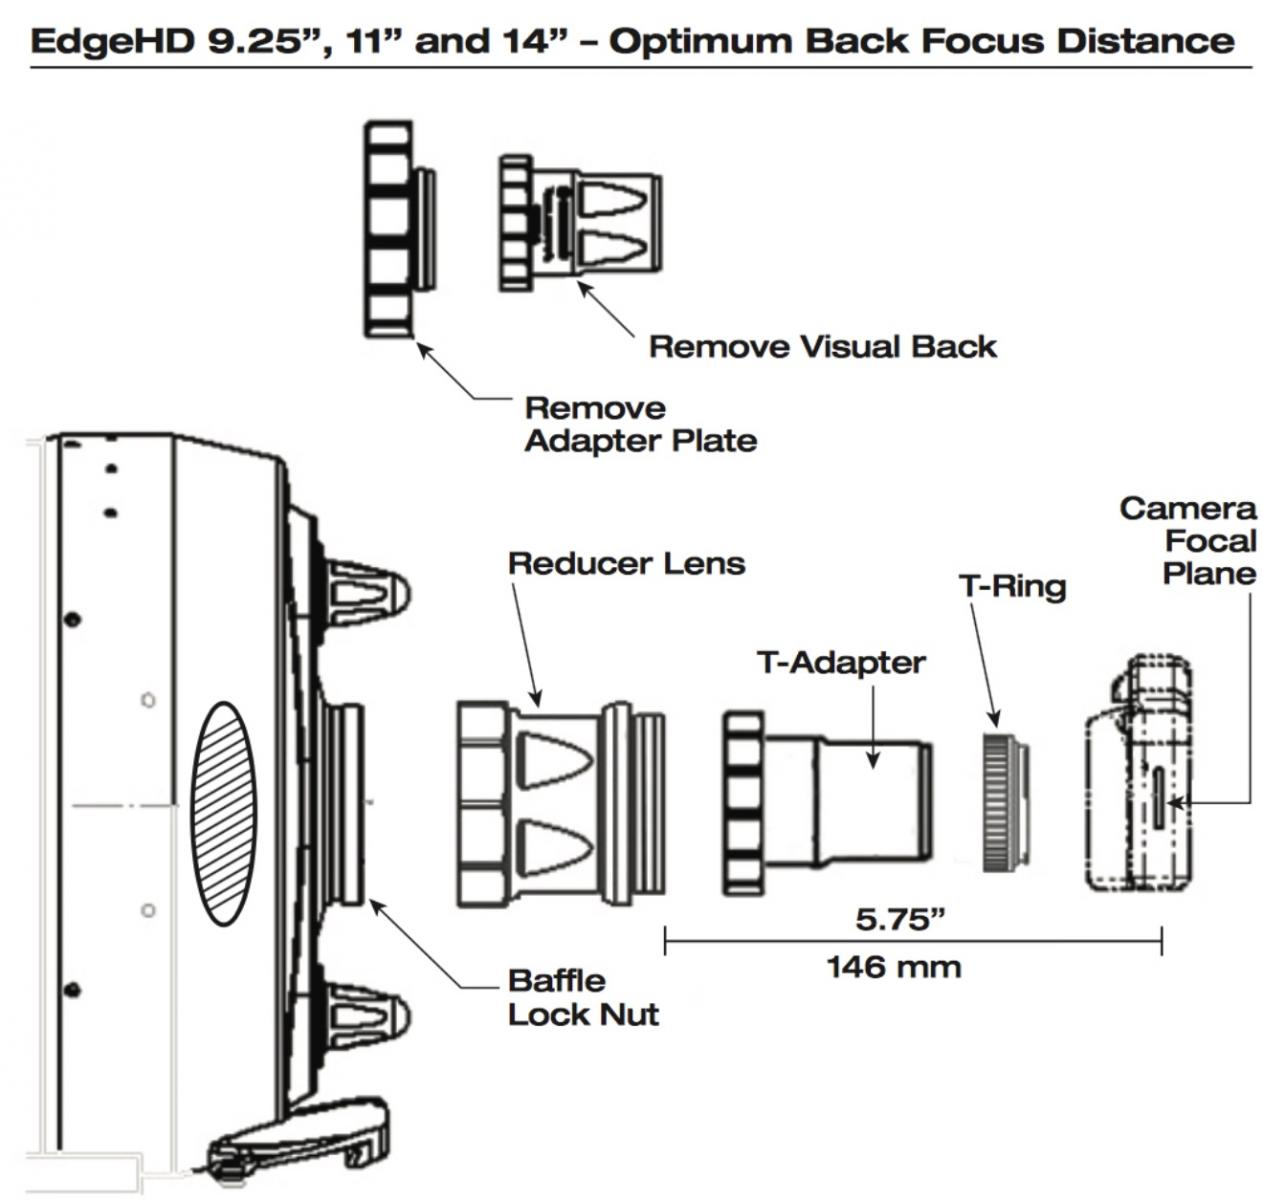 Celestron Edgehd Back Focus Measuring Starting Point Cats Lock Diagram Quotes Ad24abcc Cb9f 42f7 996c 5b14b79587cbjpeg